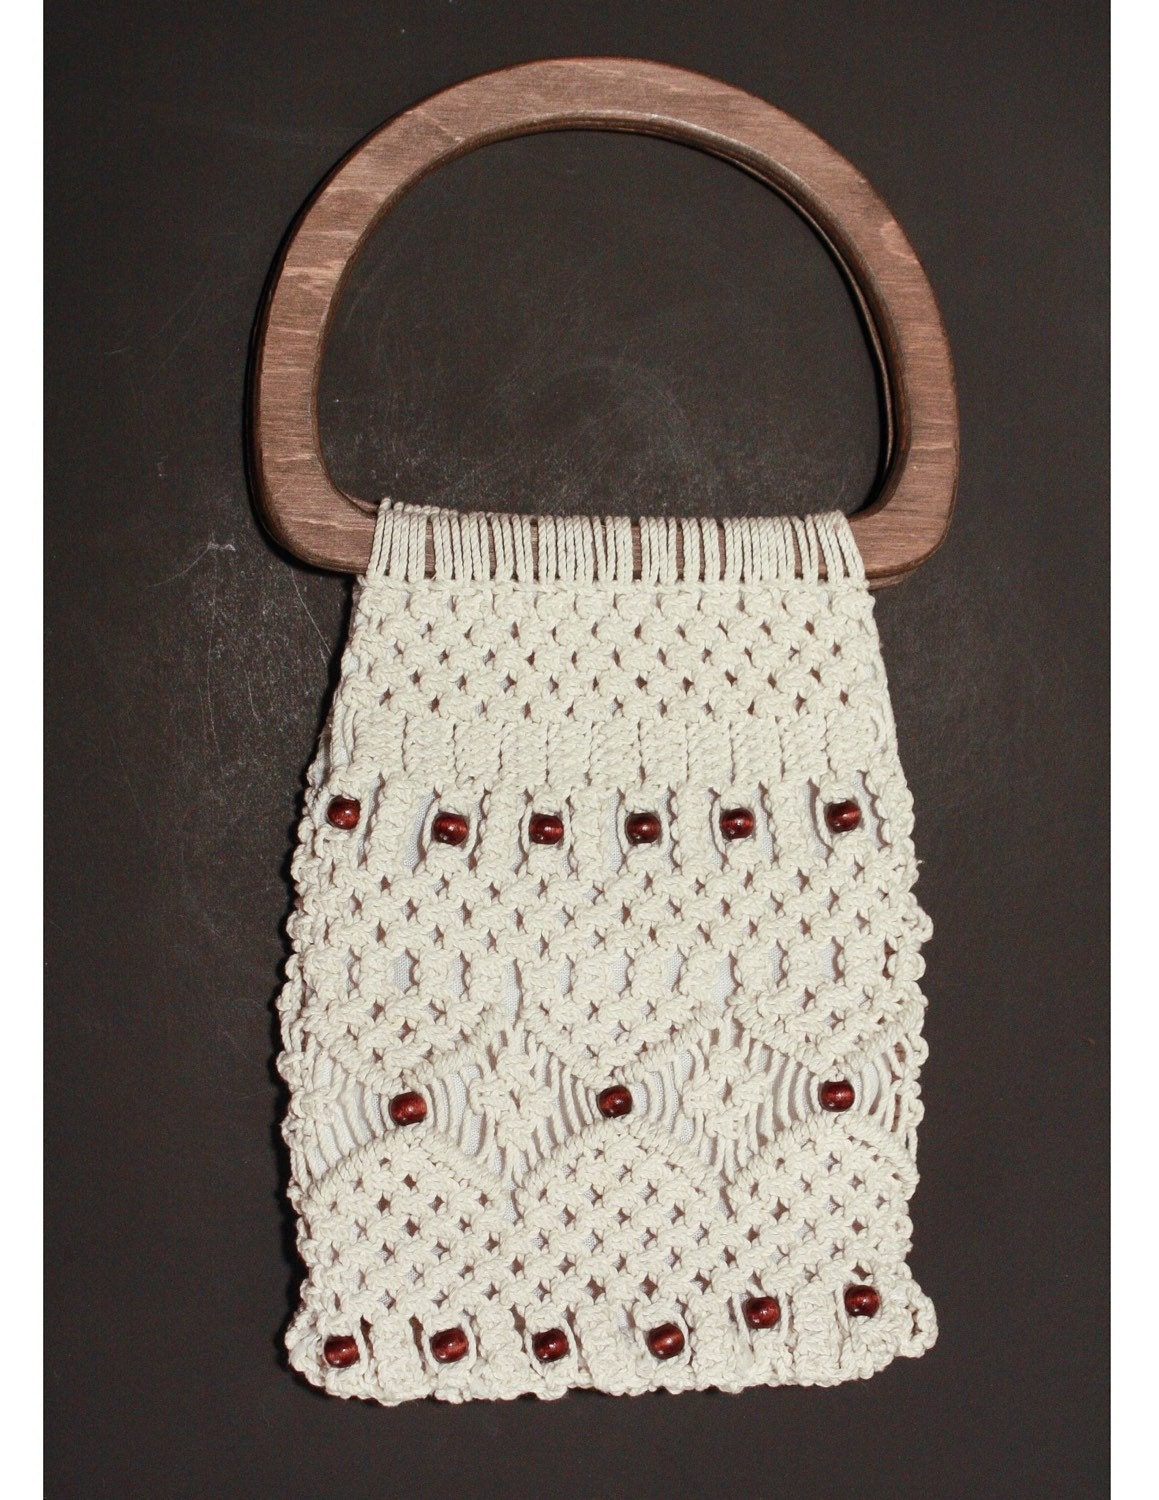 70s Cream Crochet Purse Vintage Handbag Wooden